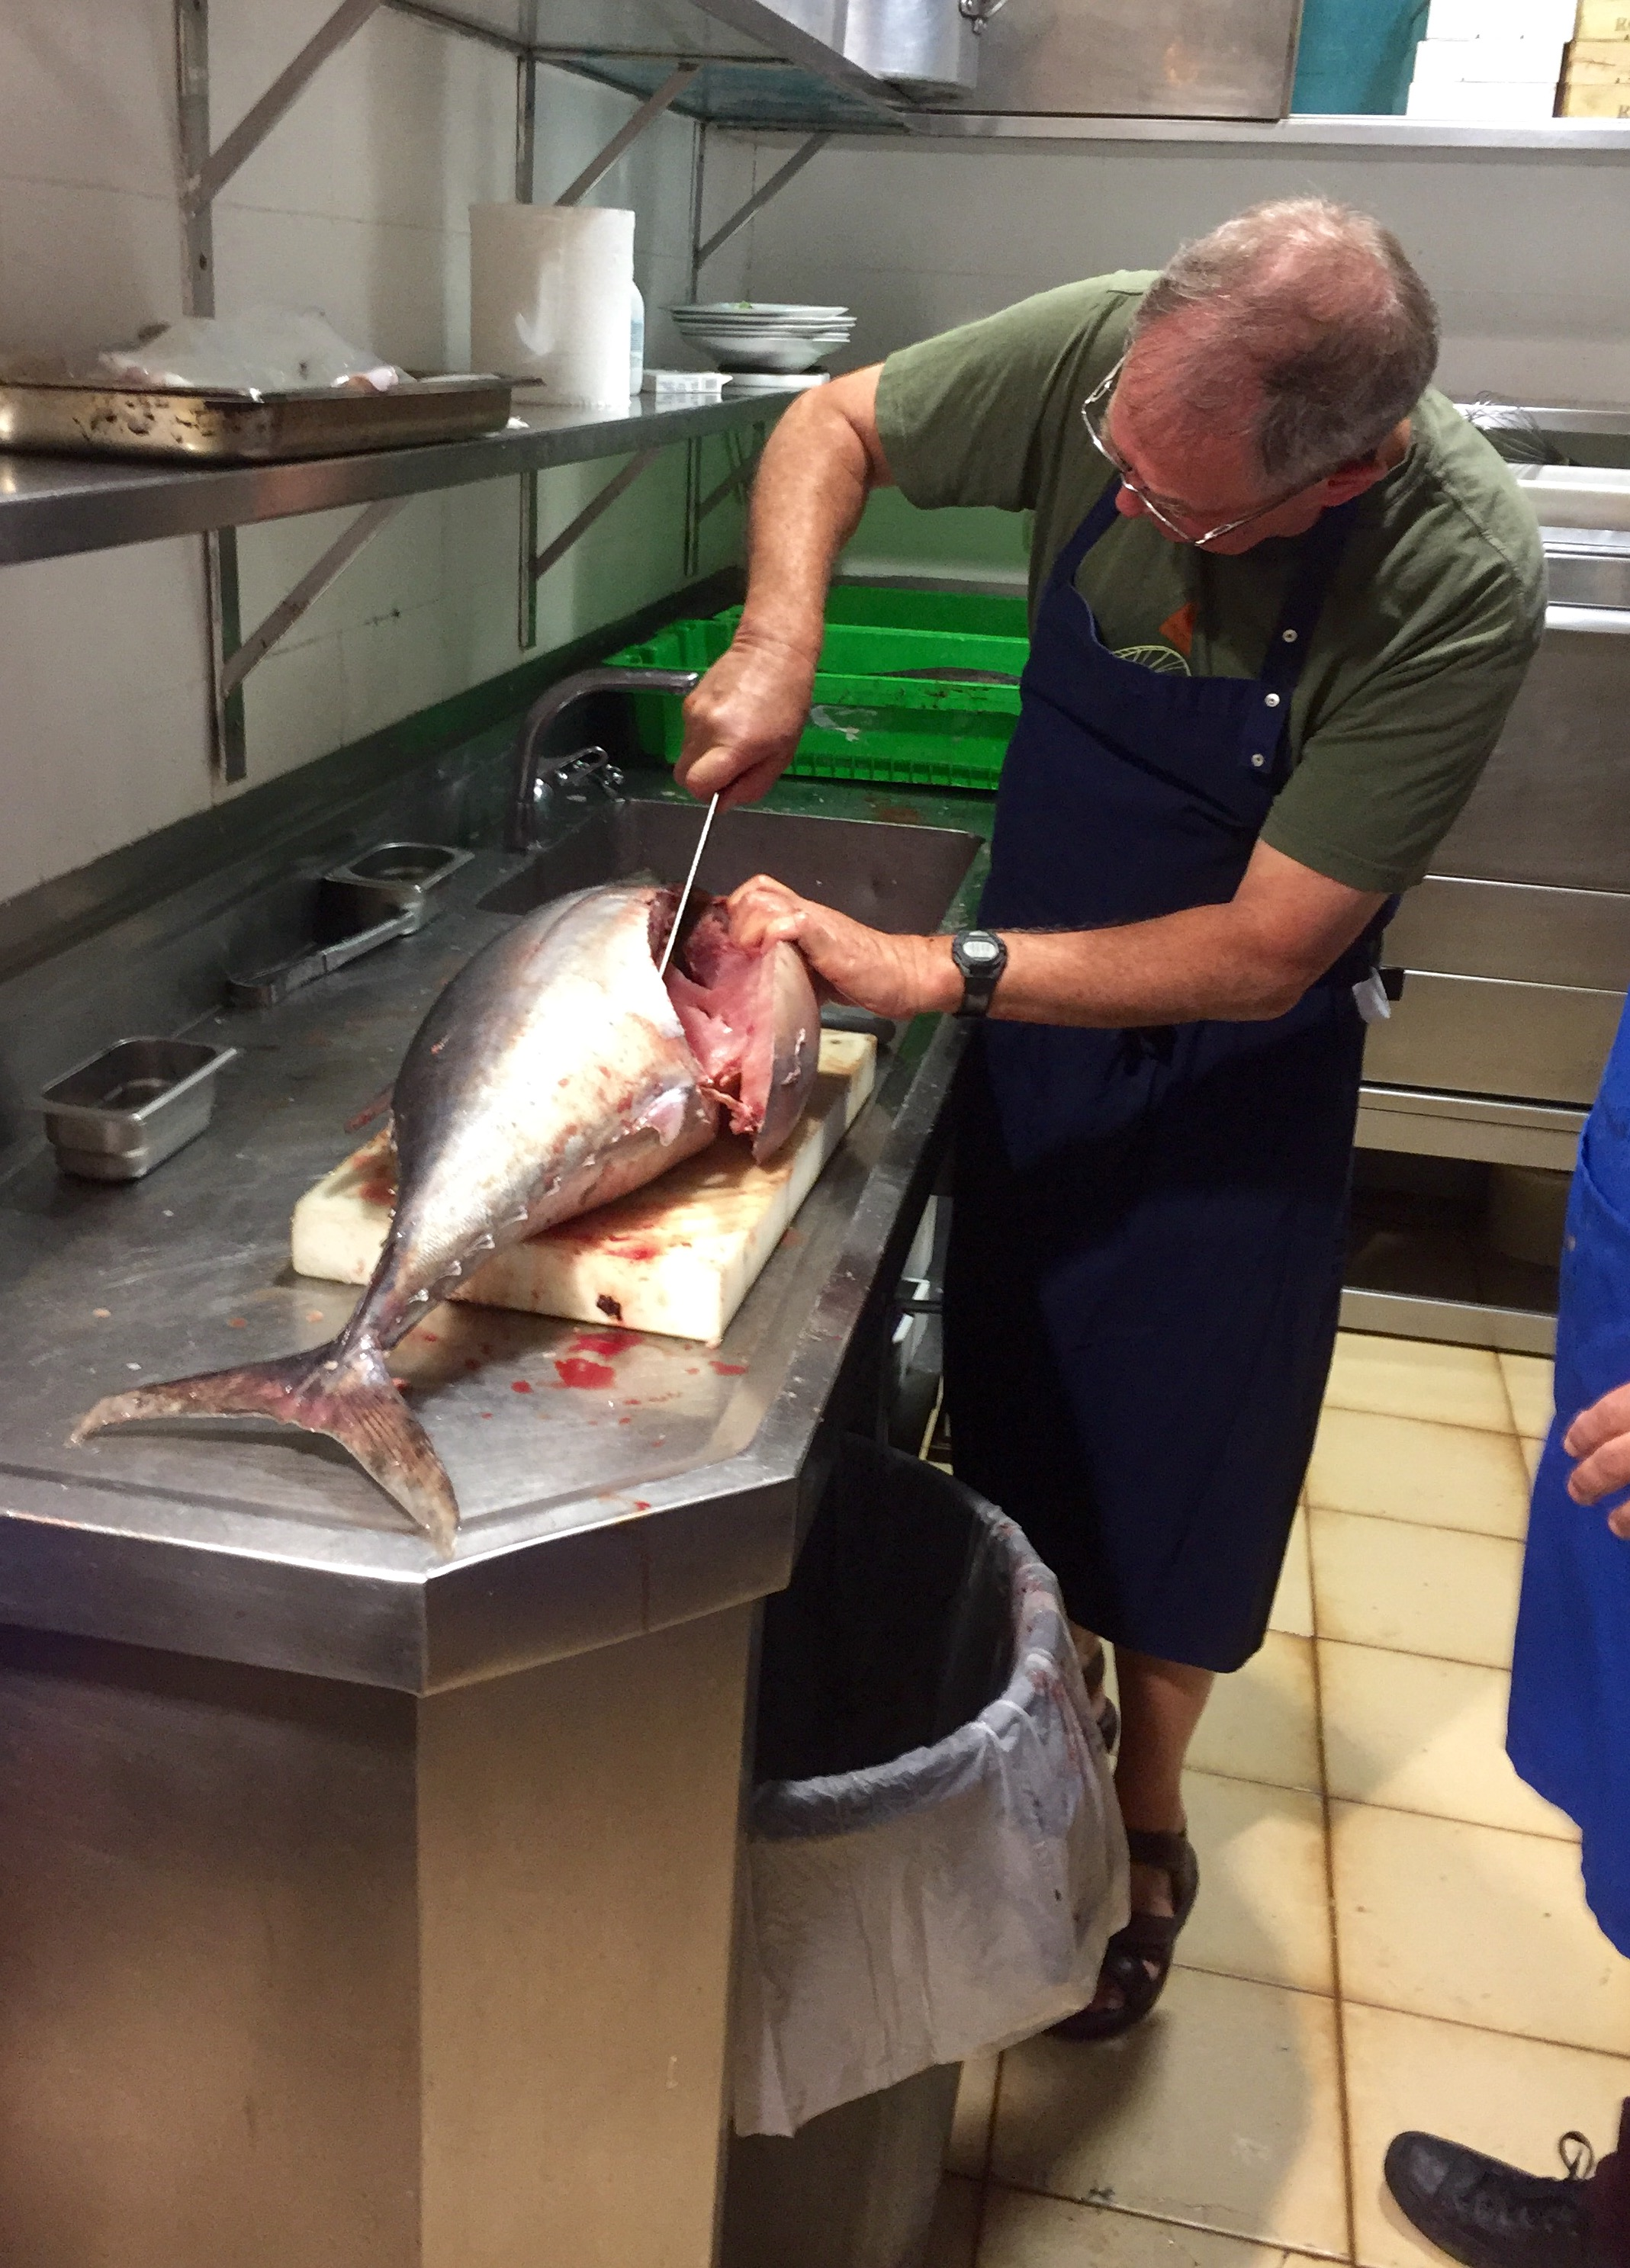 ... and here we're cleaning fish ...